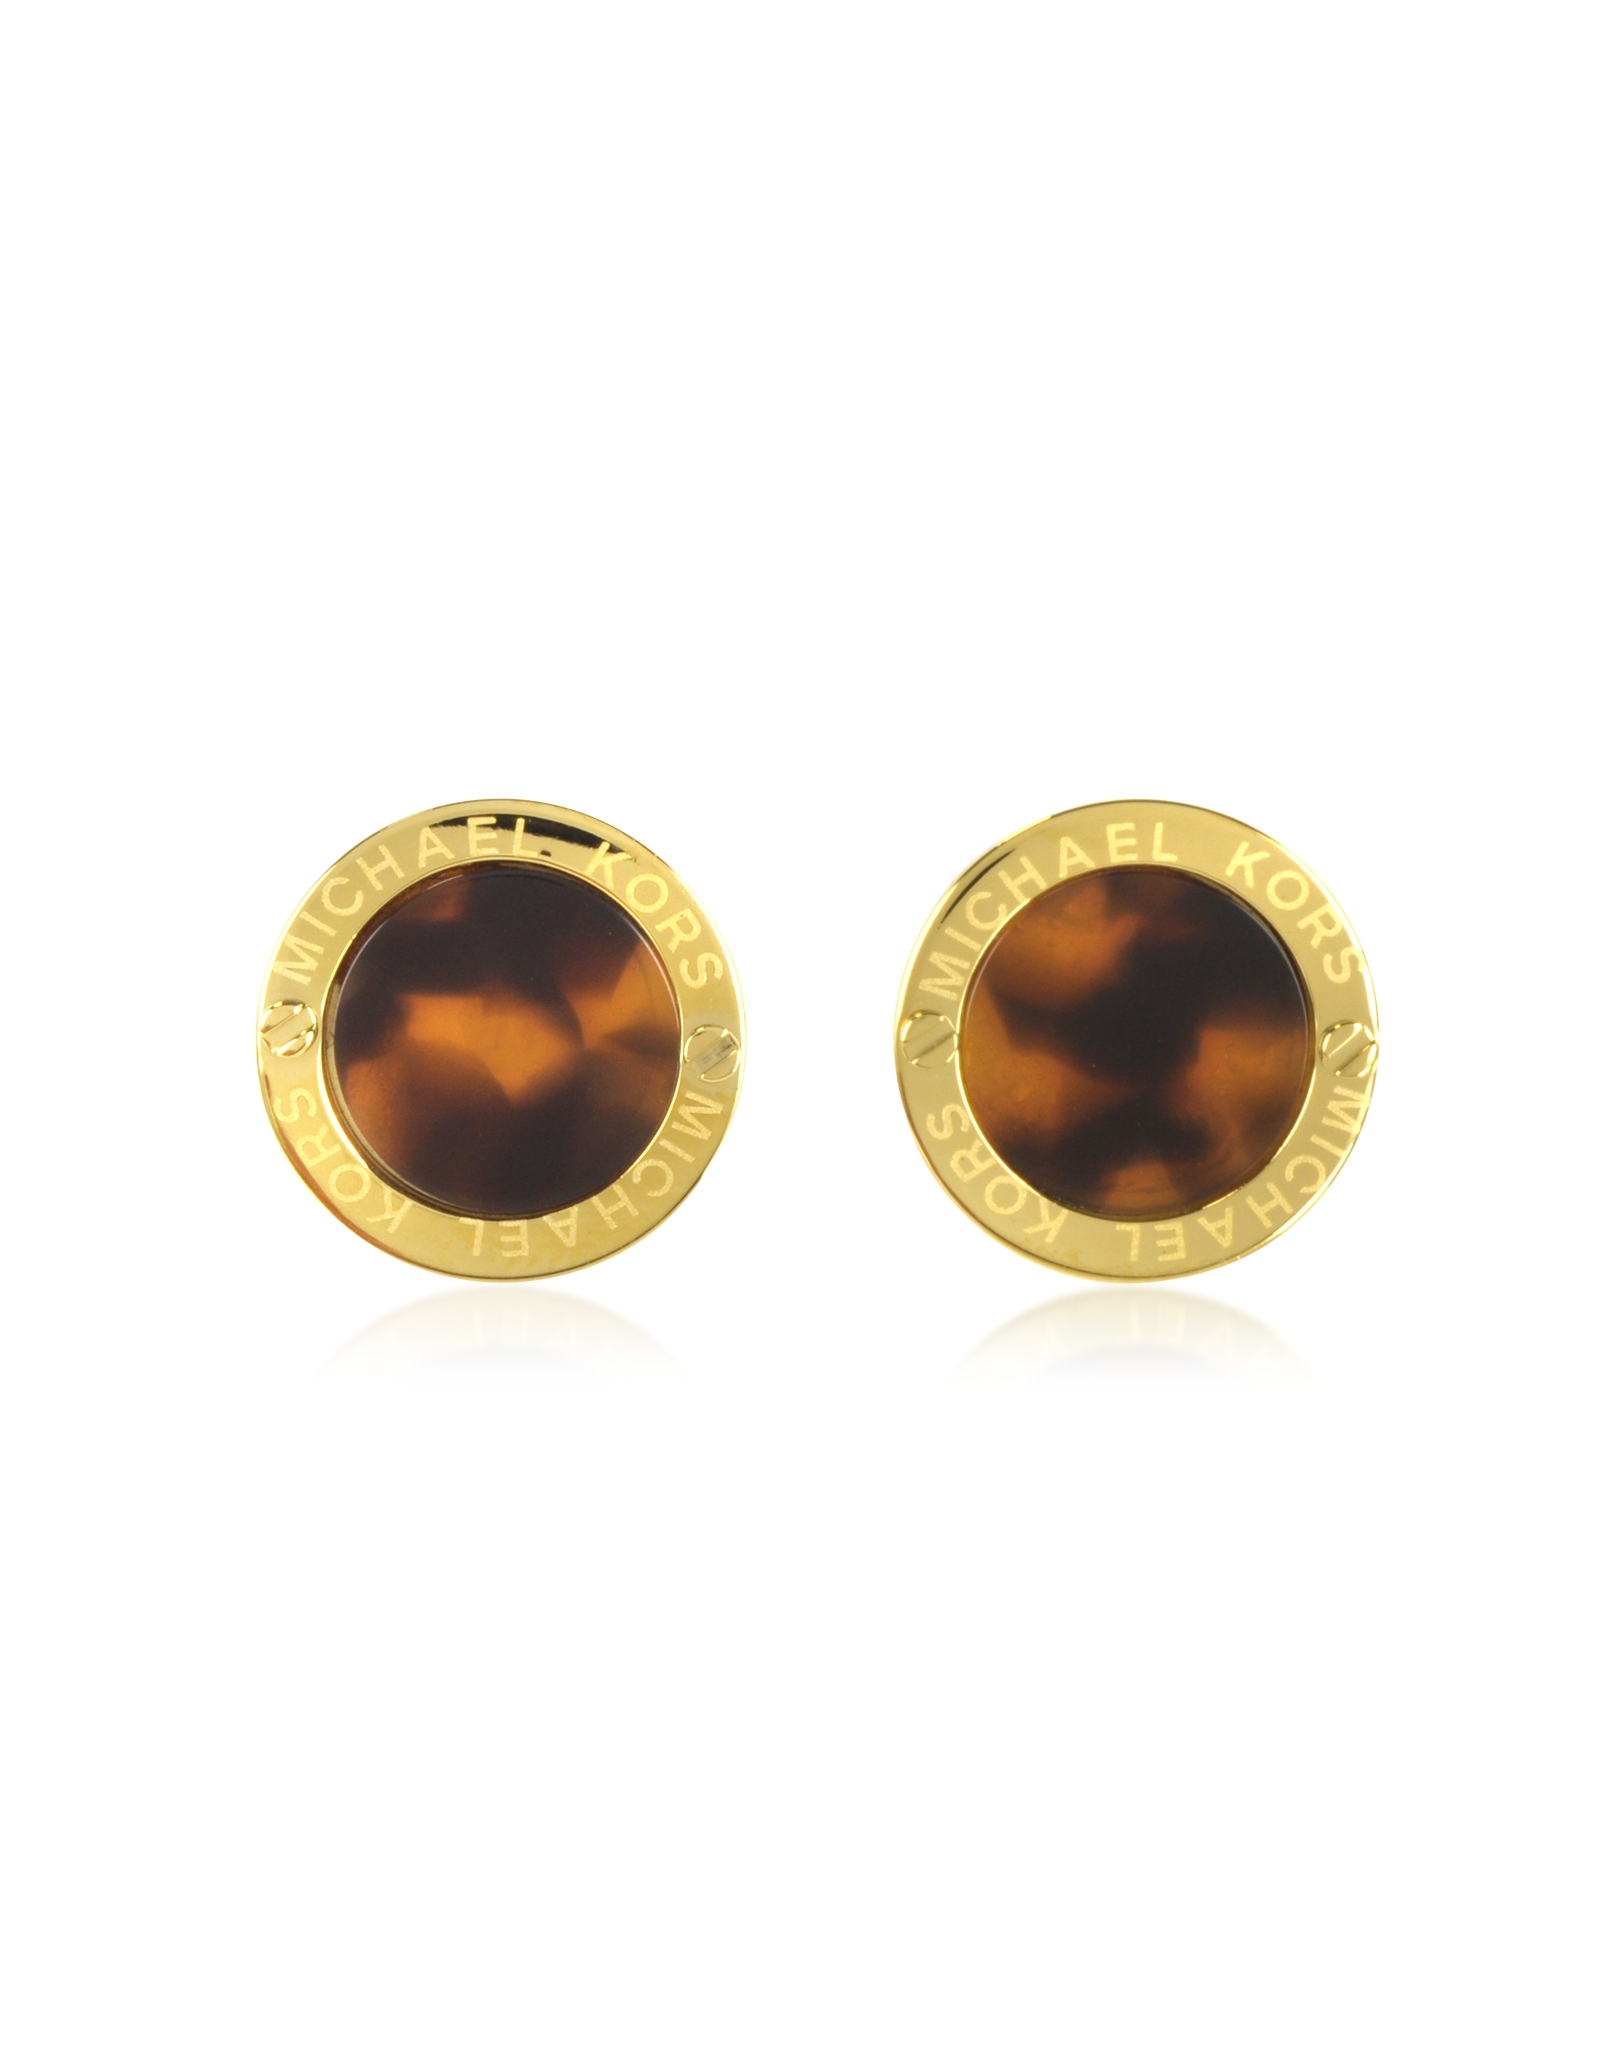 from earrings charms women accessories for semi brand jewelry new and gift agate item precious stones men topaz in end on crystal festival high tortoise design material